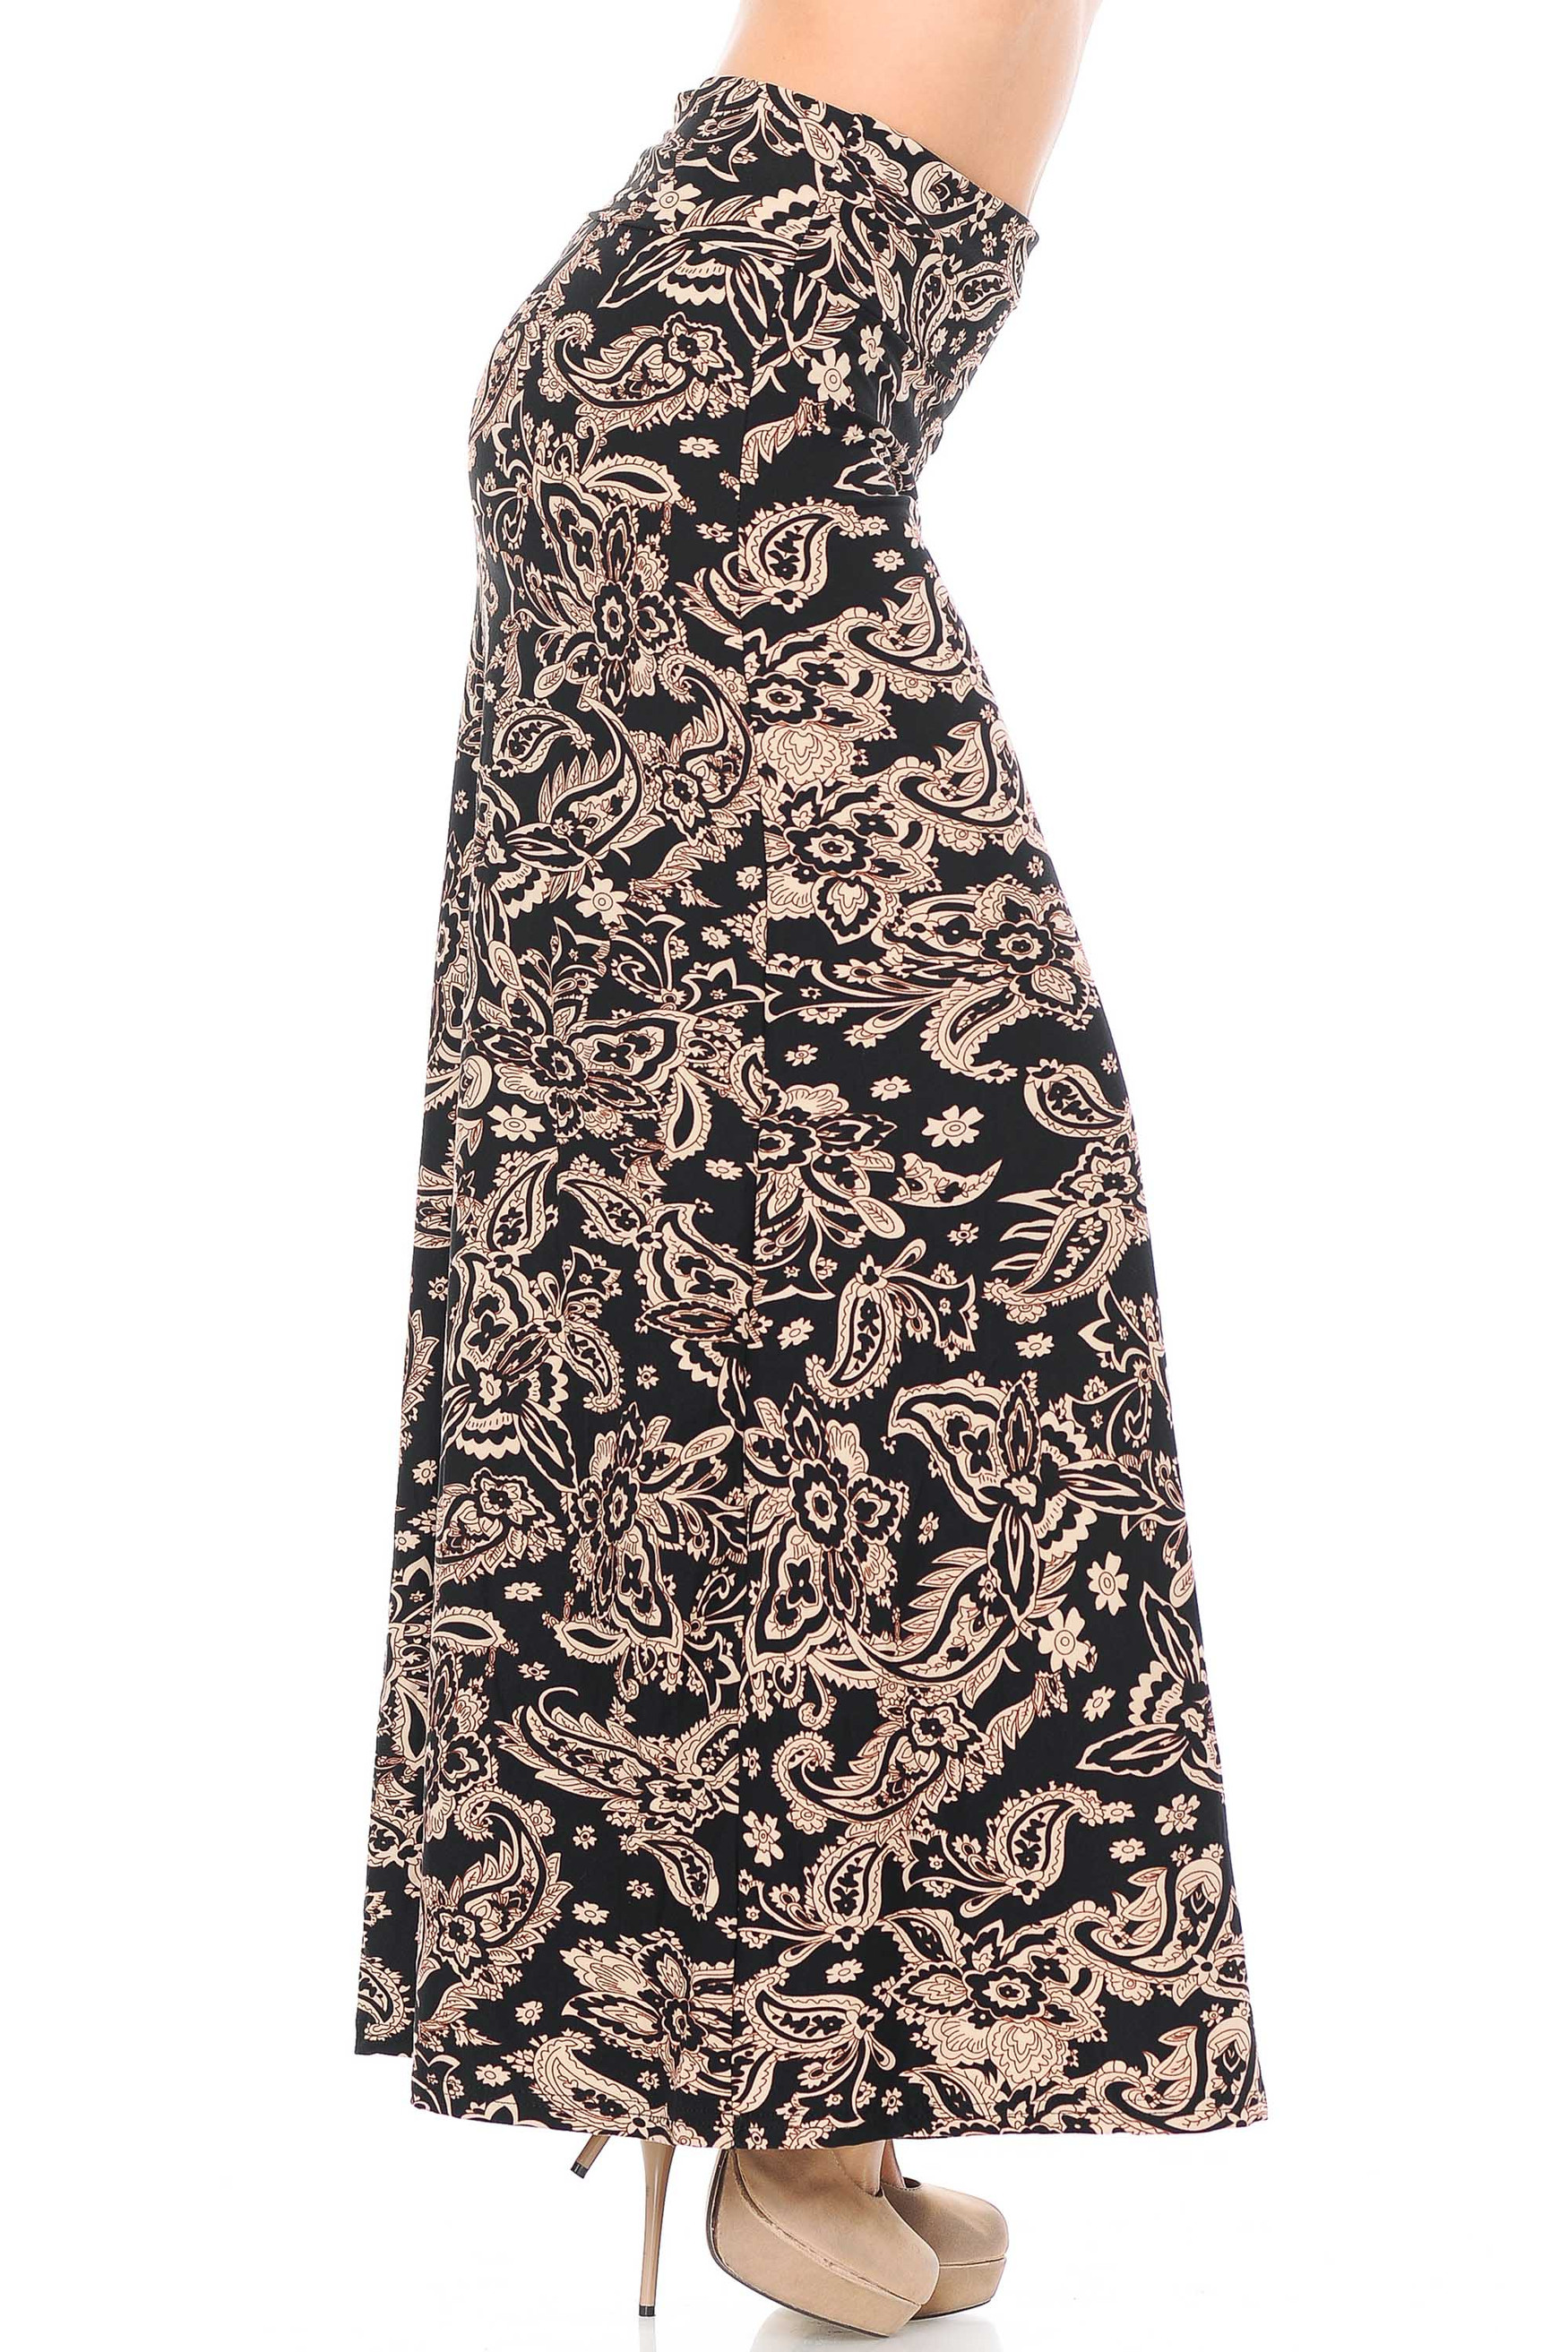 Sand Pepper Paisley Plus Size Buttery Soft Maxi Skirt